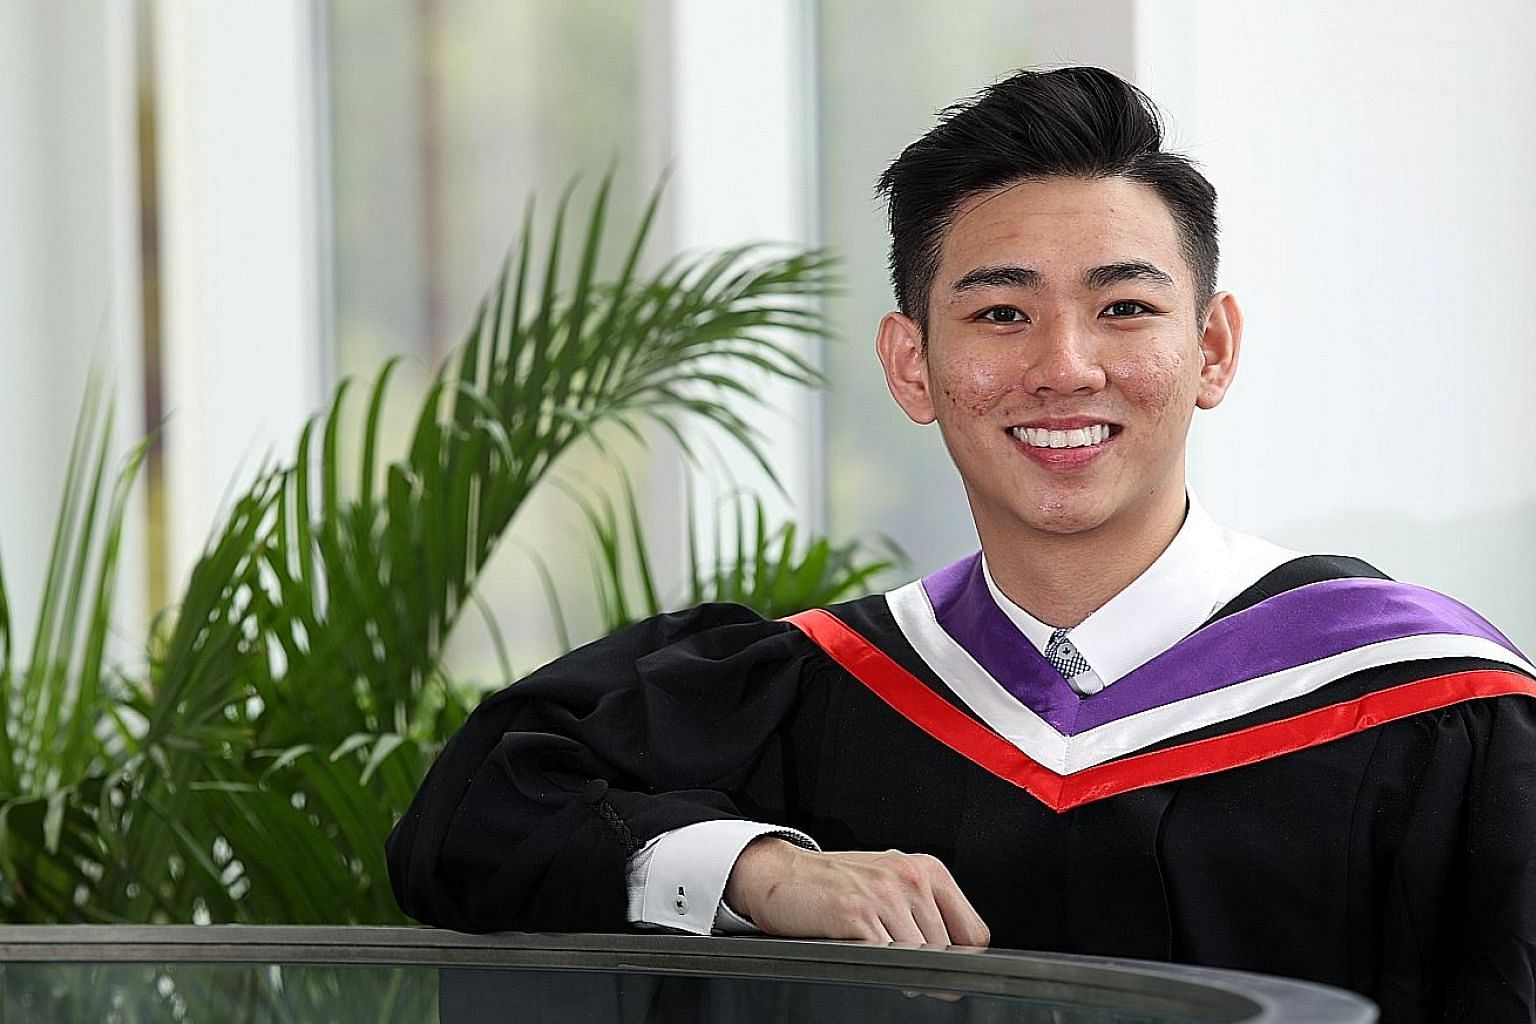 Mr Chua Kah Sheng, 26, was one of 14 graduates this year from the Singapore Institute of Technology who were part of the SkillsFuture Work-Study Degree Programme. PHOTO: LIANHE ZAOBAO